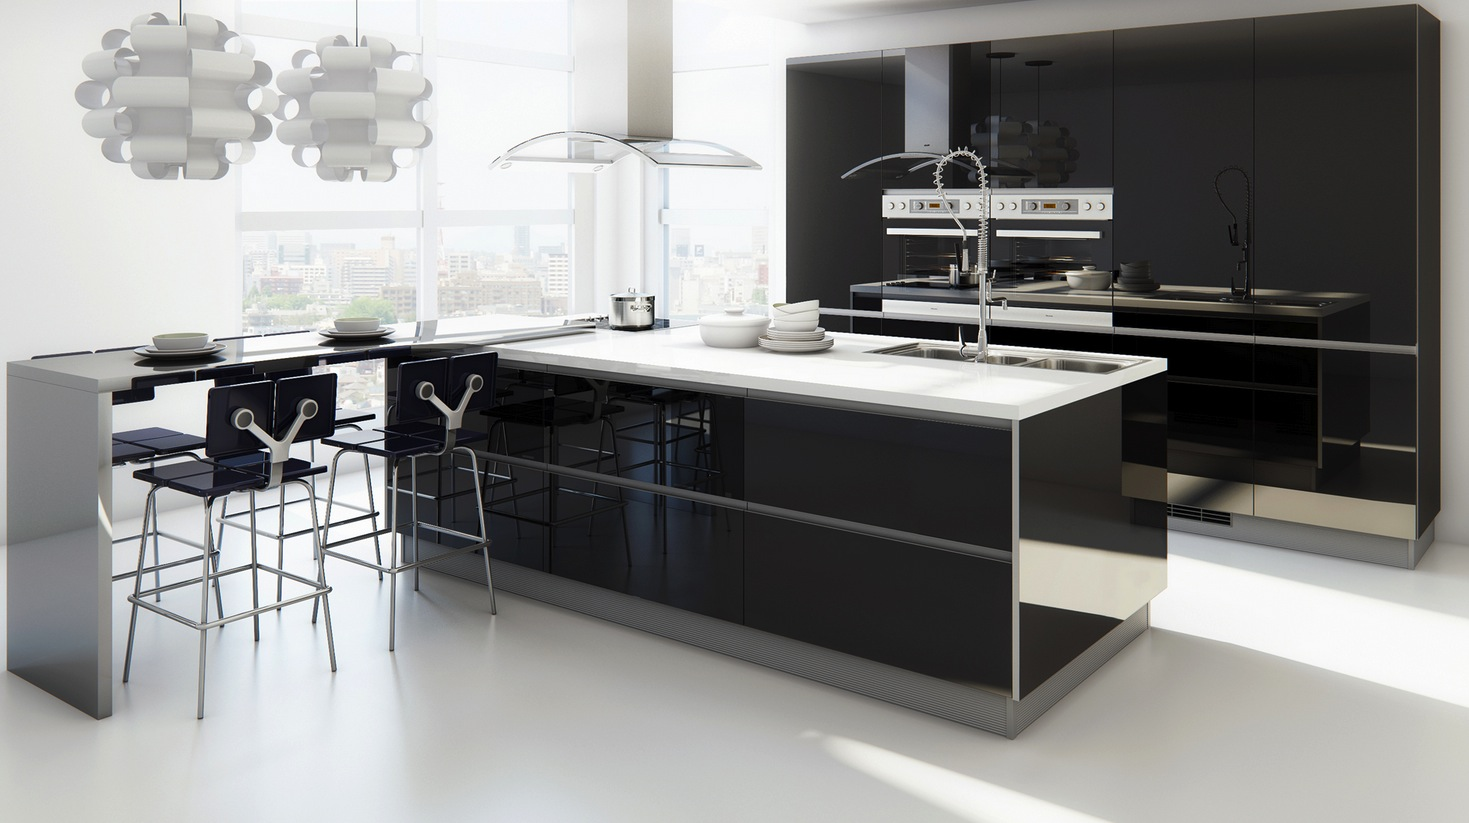 12 modern eat in kitchen designs - Muebles de cocina modernos ...